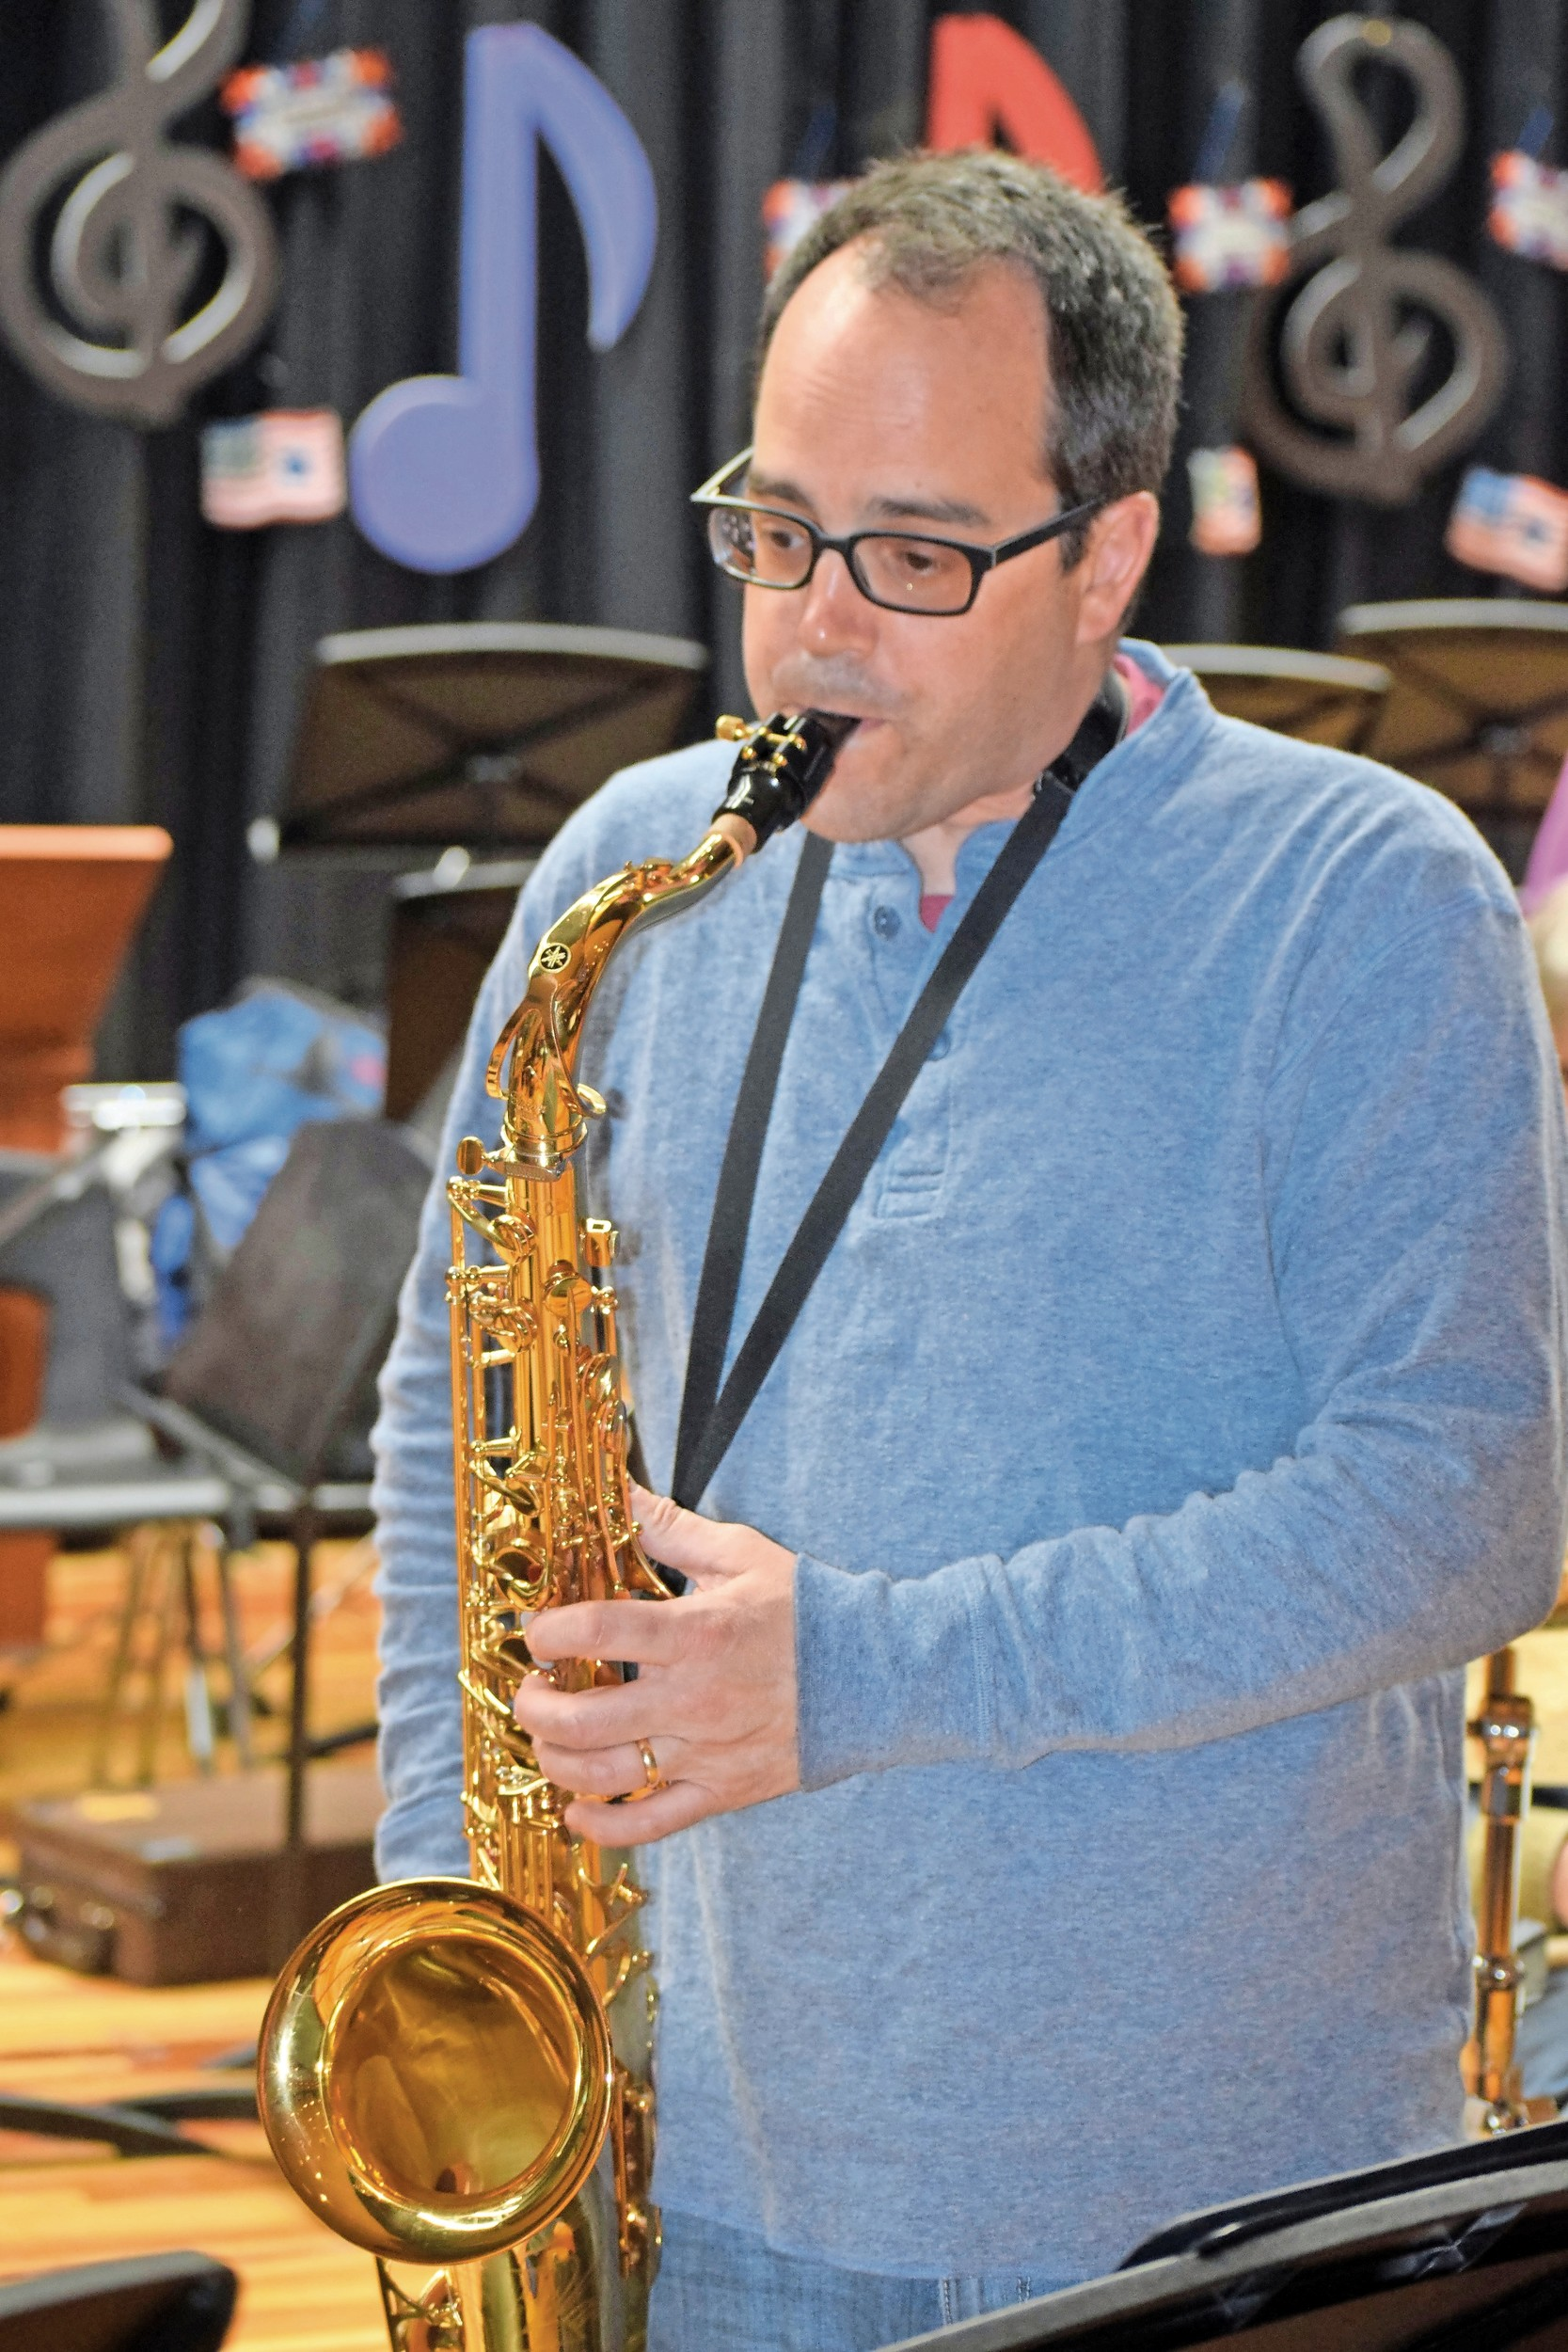 Christopher D'Orio has played the tenor saxophone in the Seaford Community Jazz Band for four years.